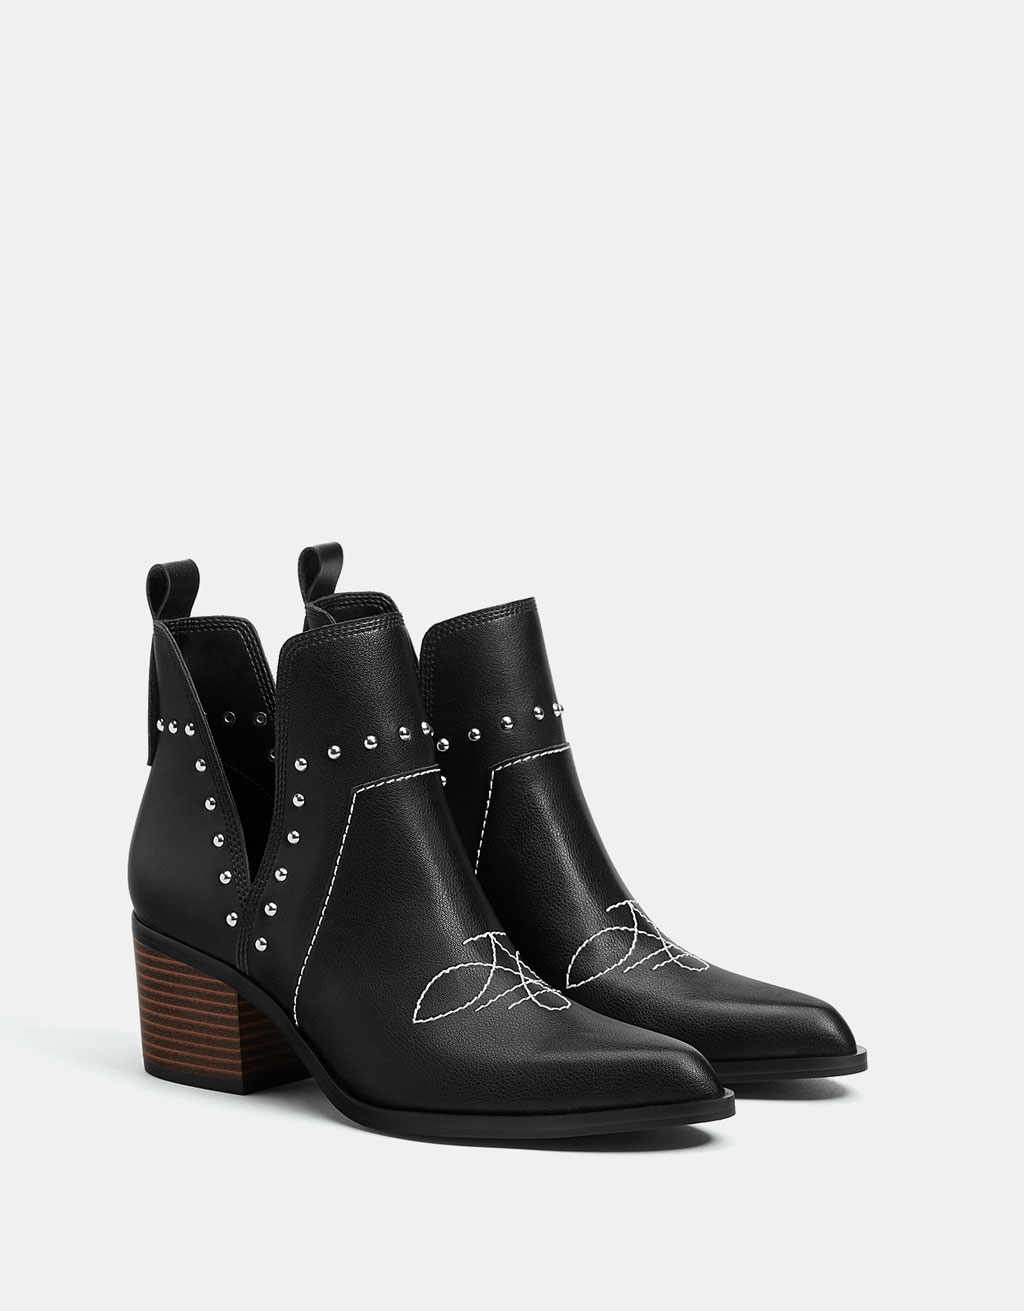 Bottines cowboy cloutées